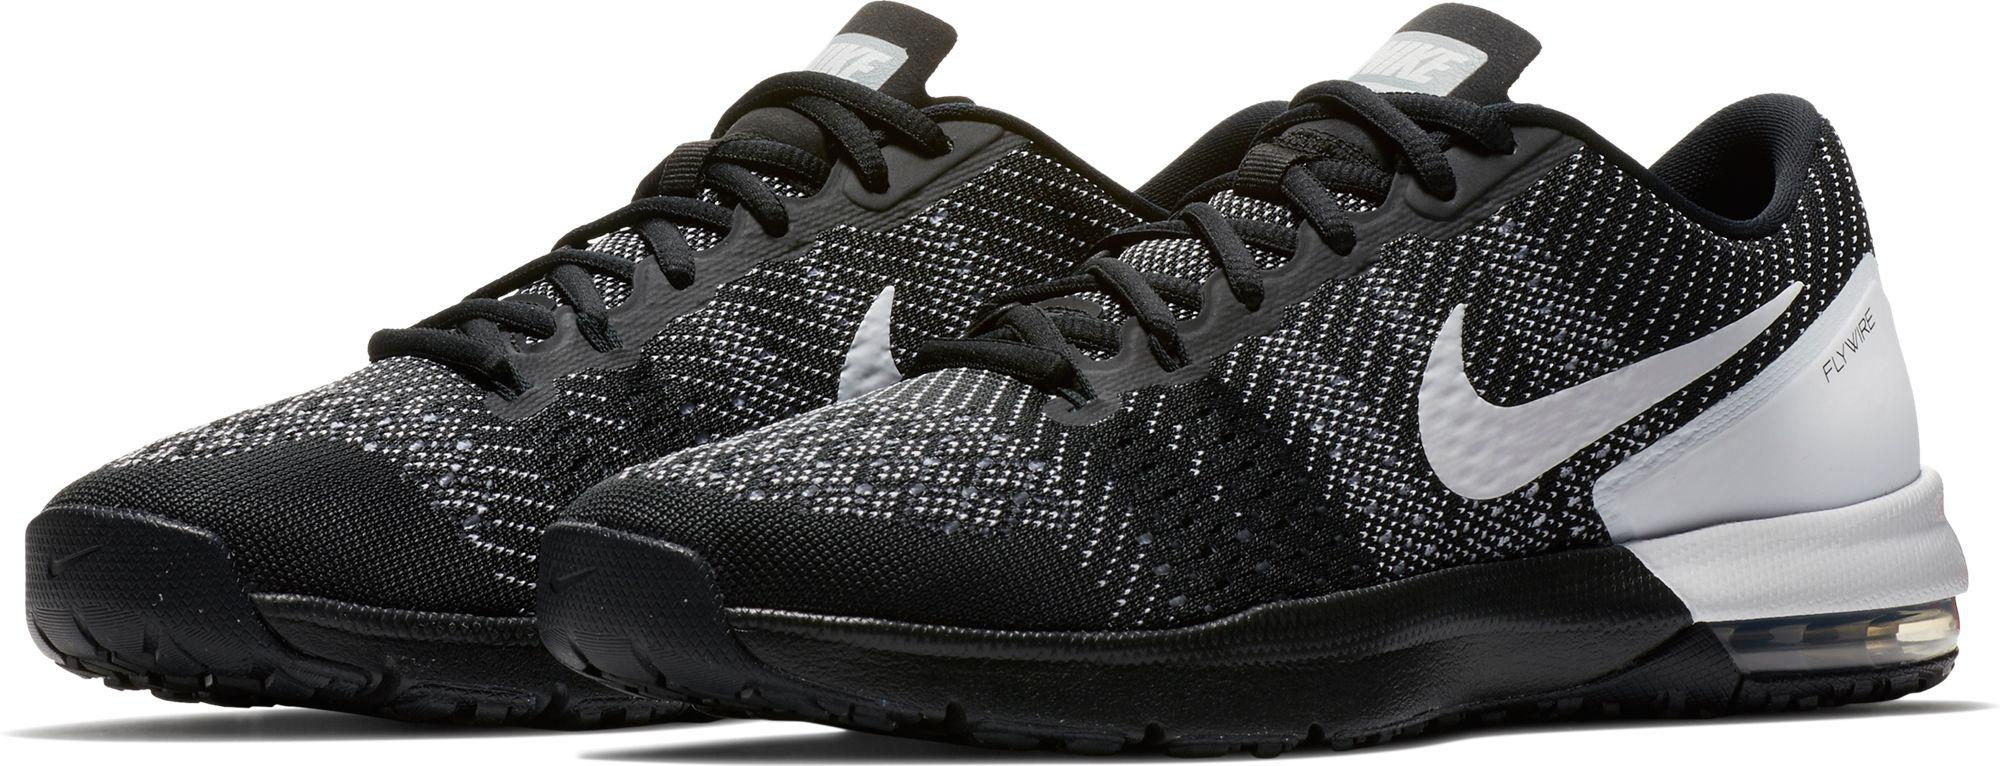 8cd3526930 Lyst - Nike Air Max Typha Training Shoes in Black for Men